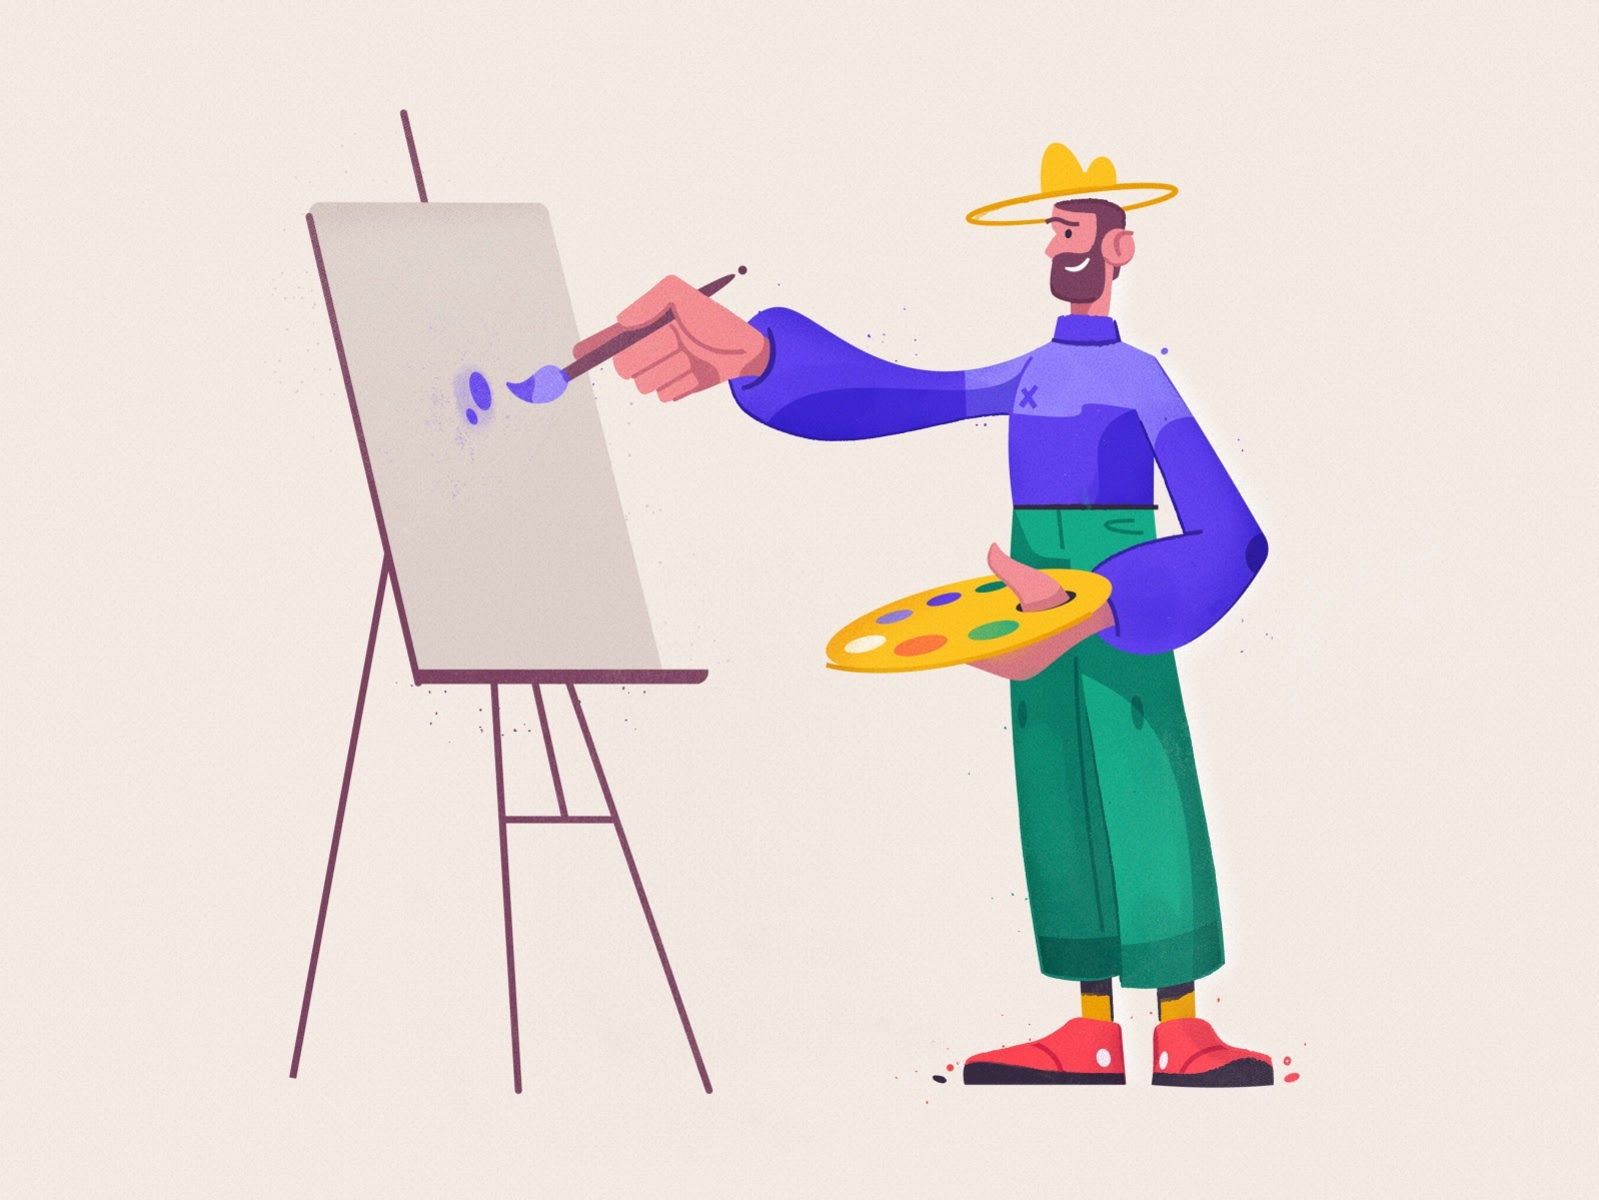 animated illustration of man painting on a canvas